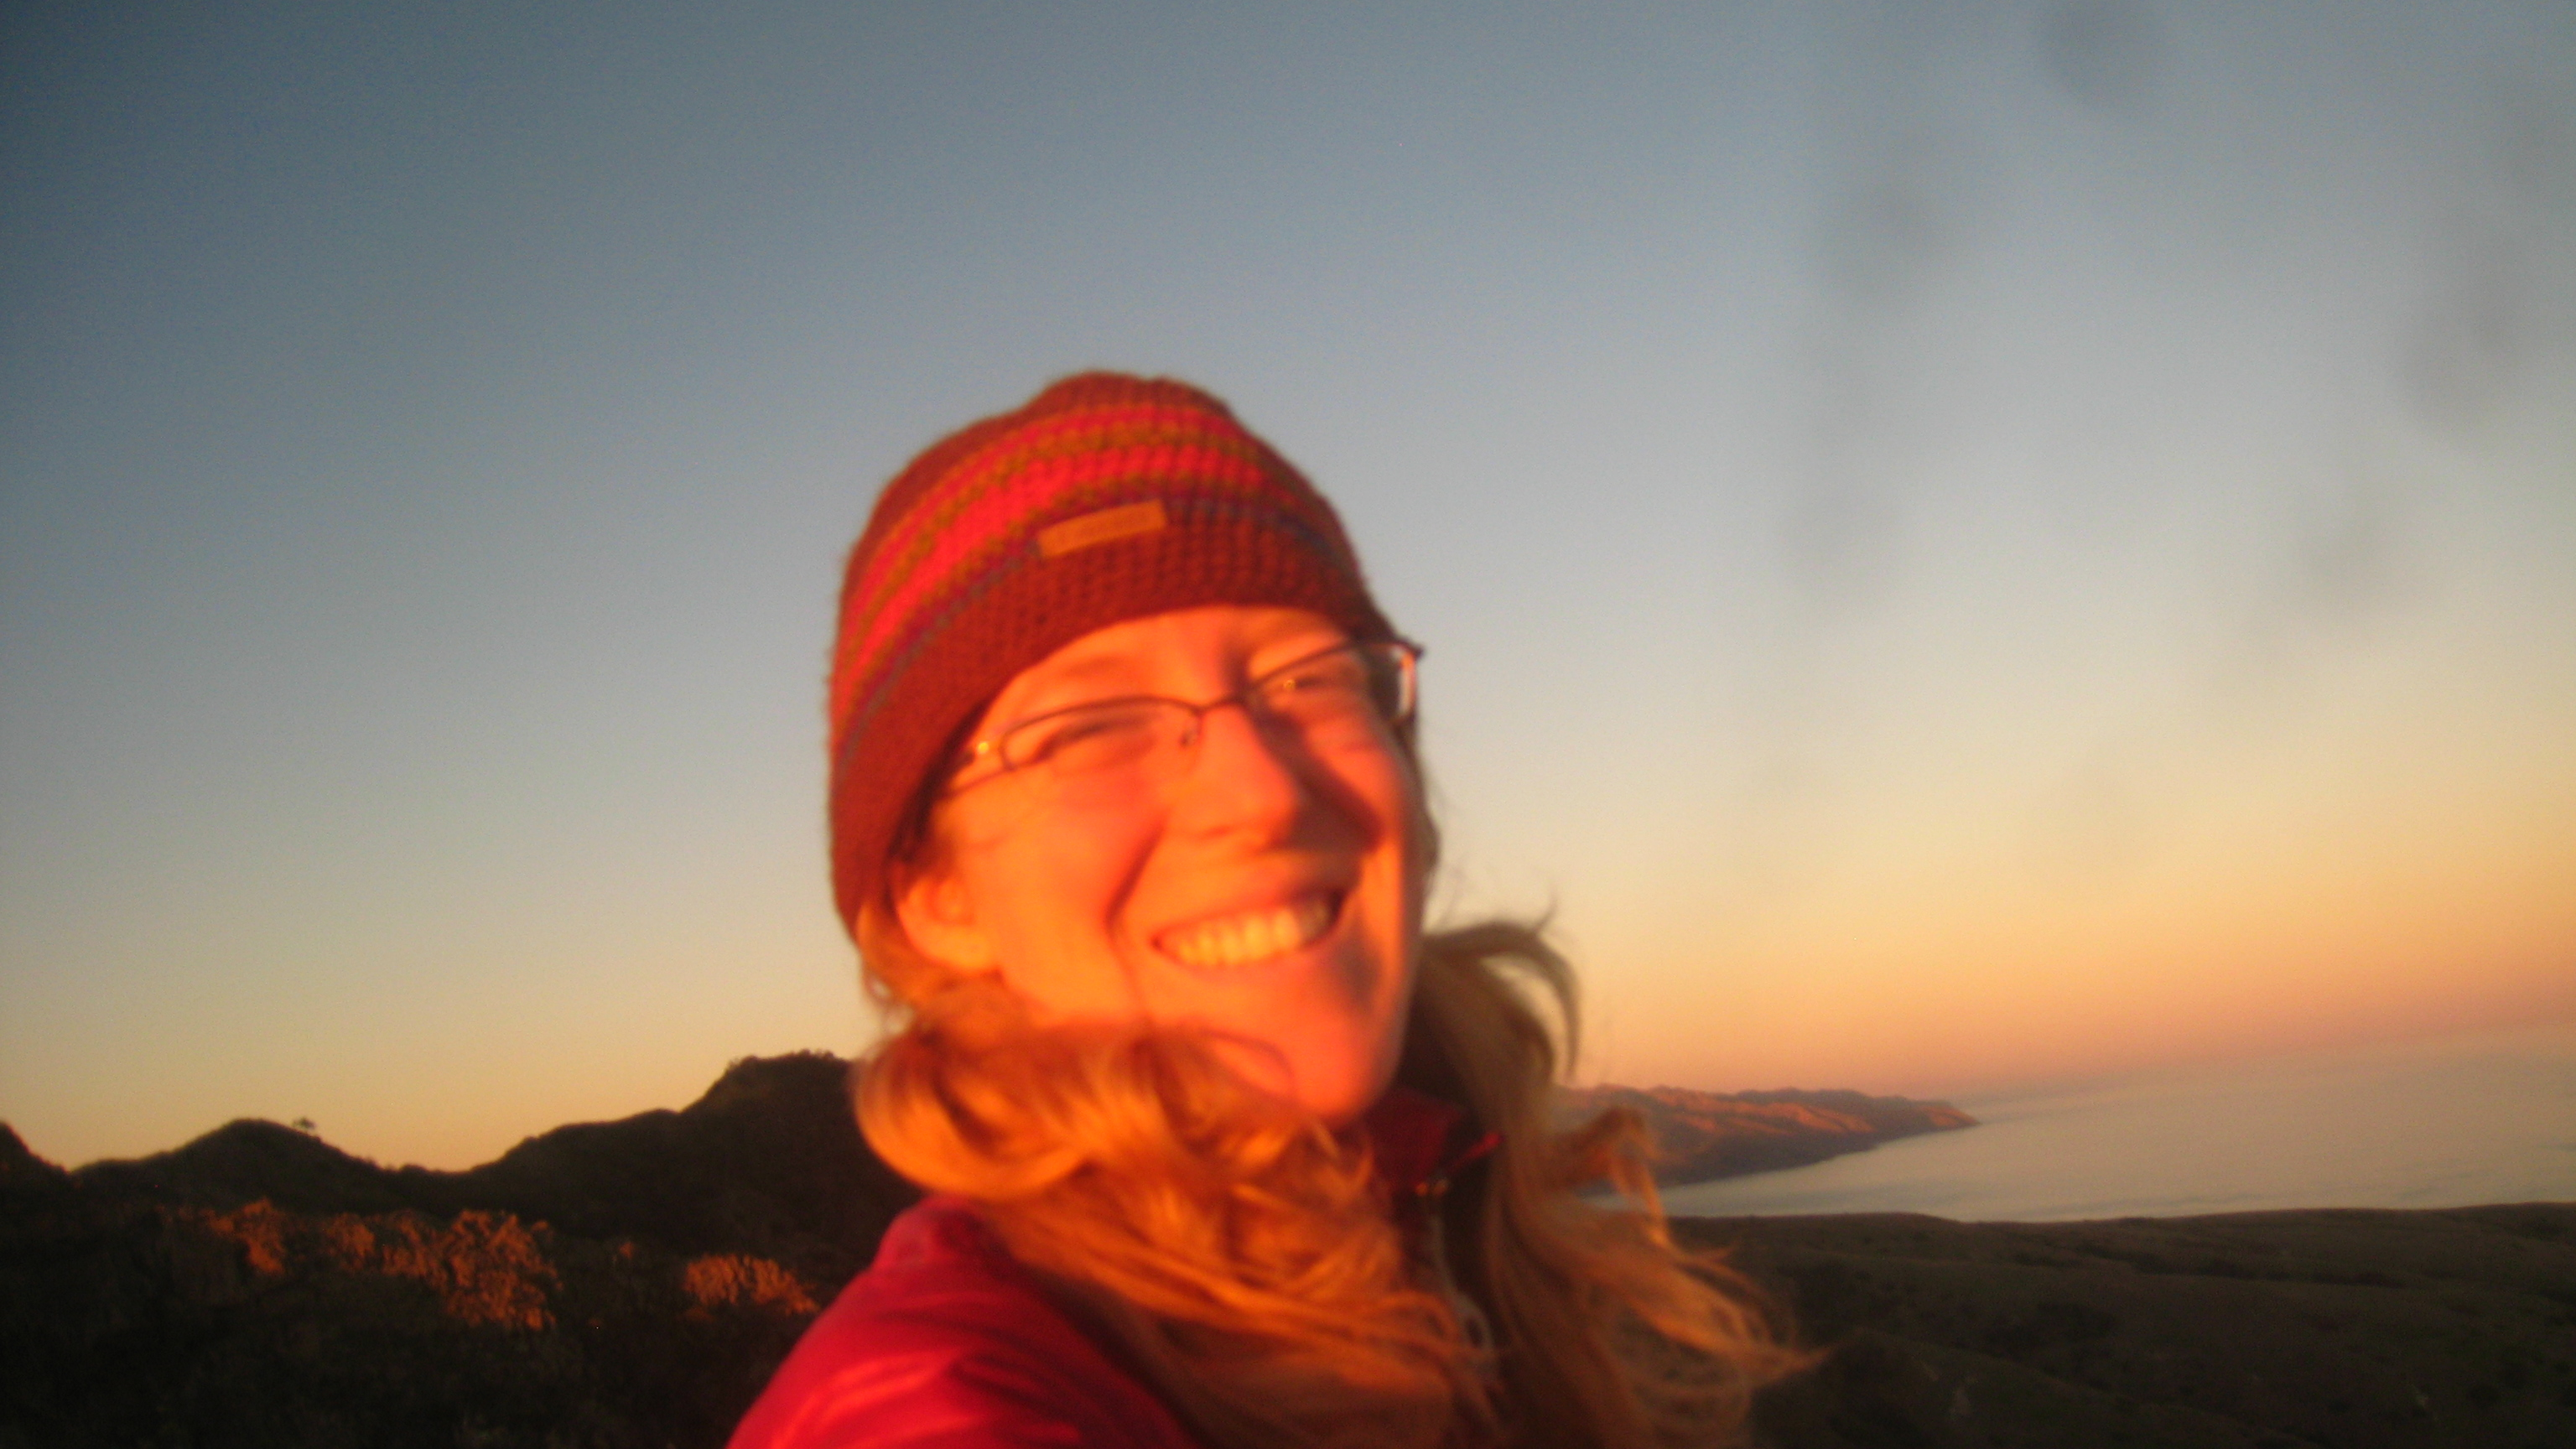 A windy sunrise on the mountain top